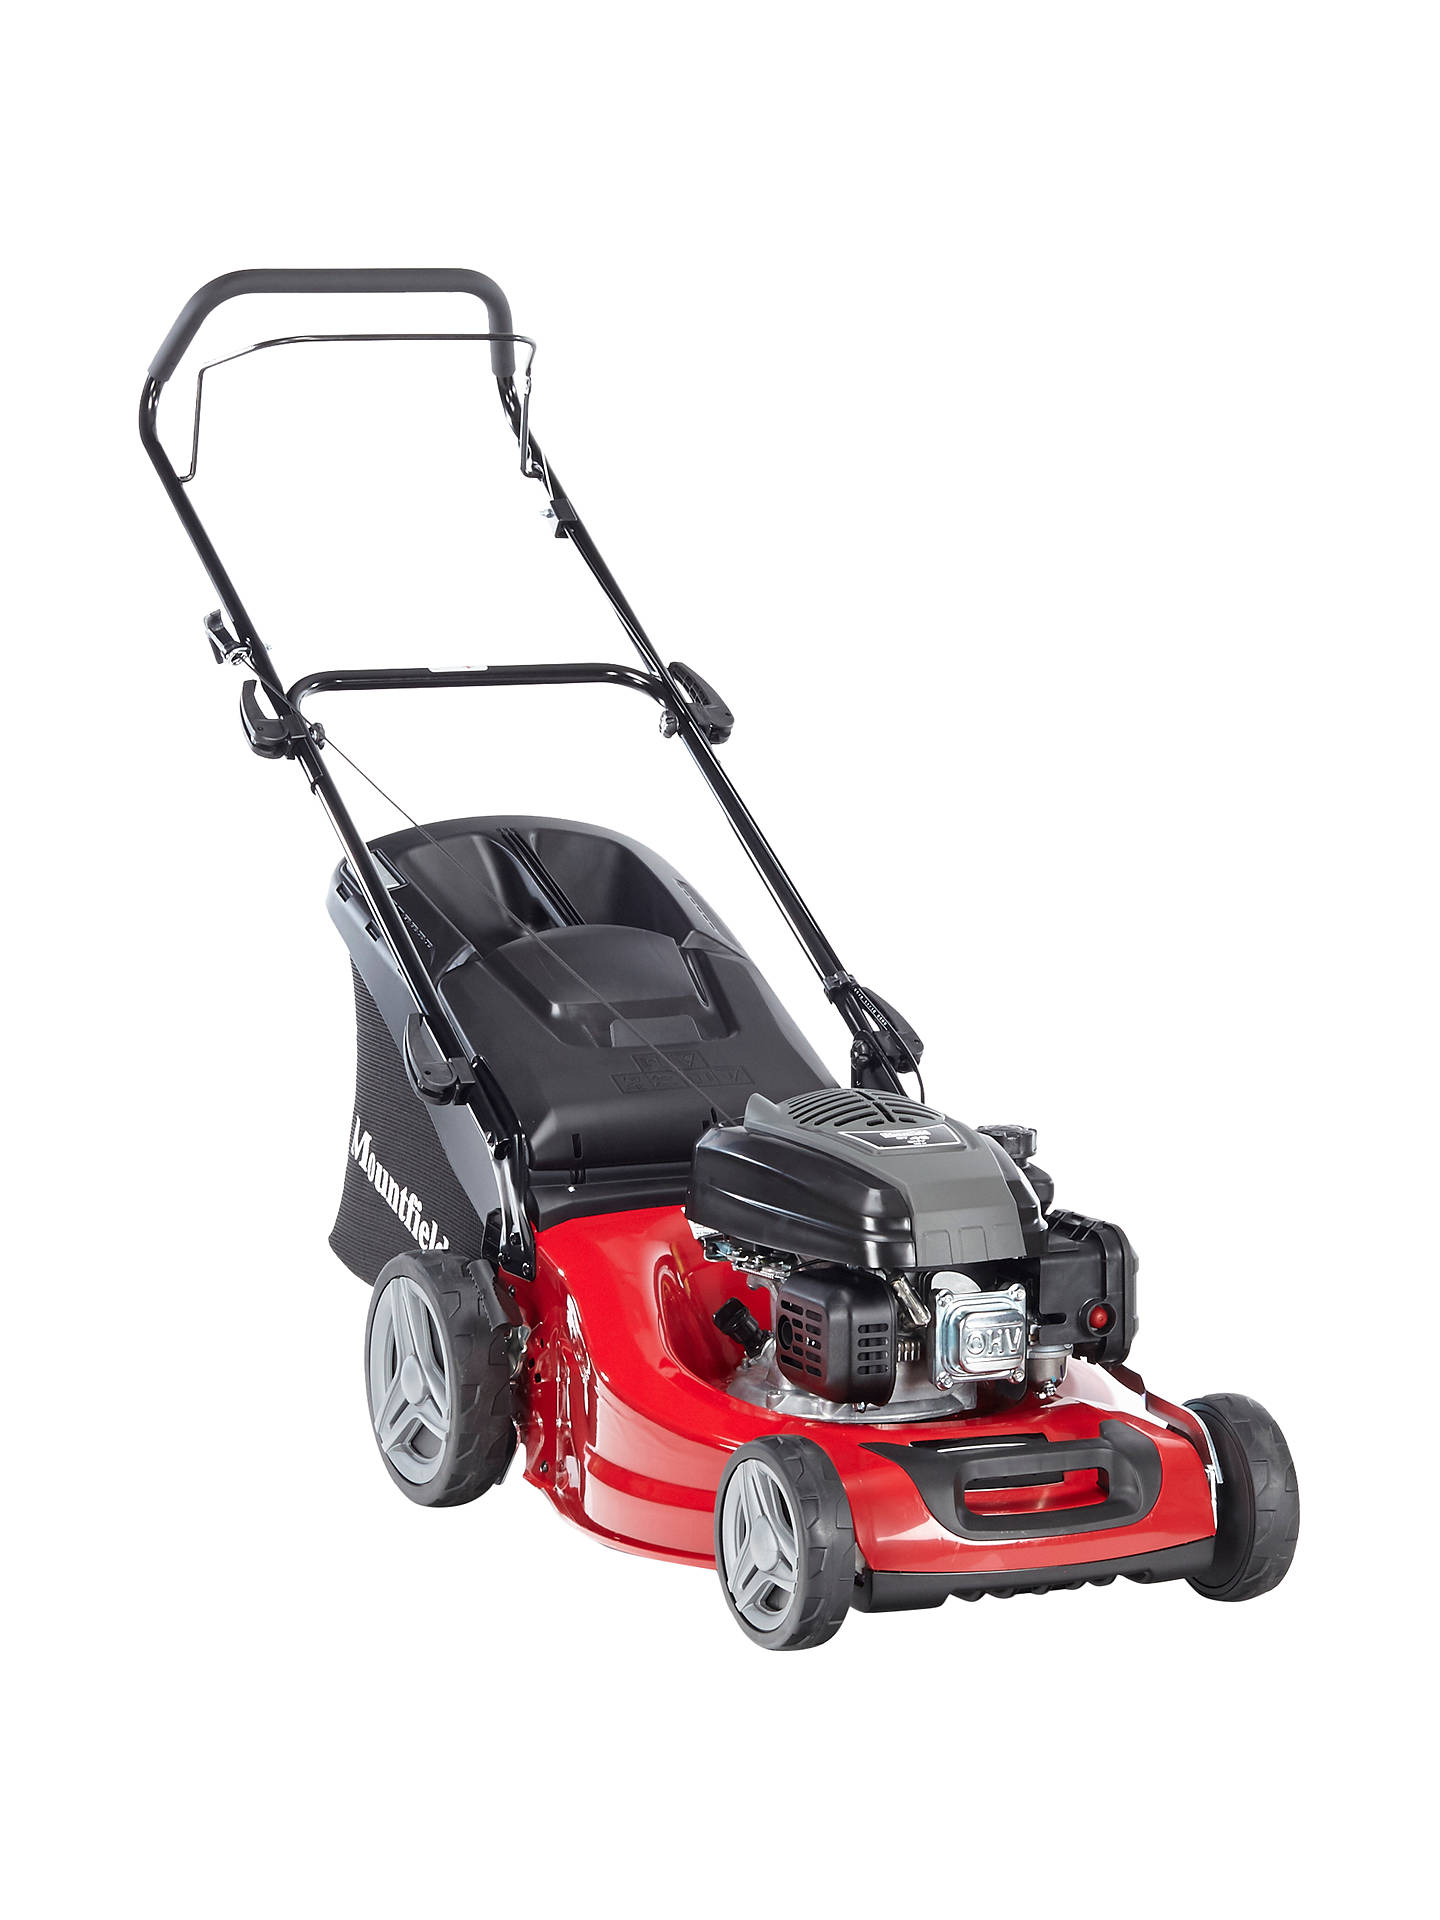 Mountfield S481HP Hand Propelled 140cc Petrol Lawnmower